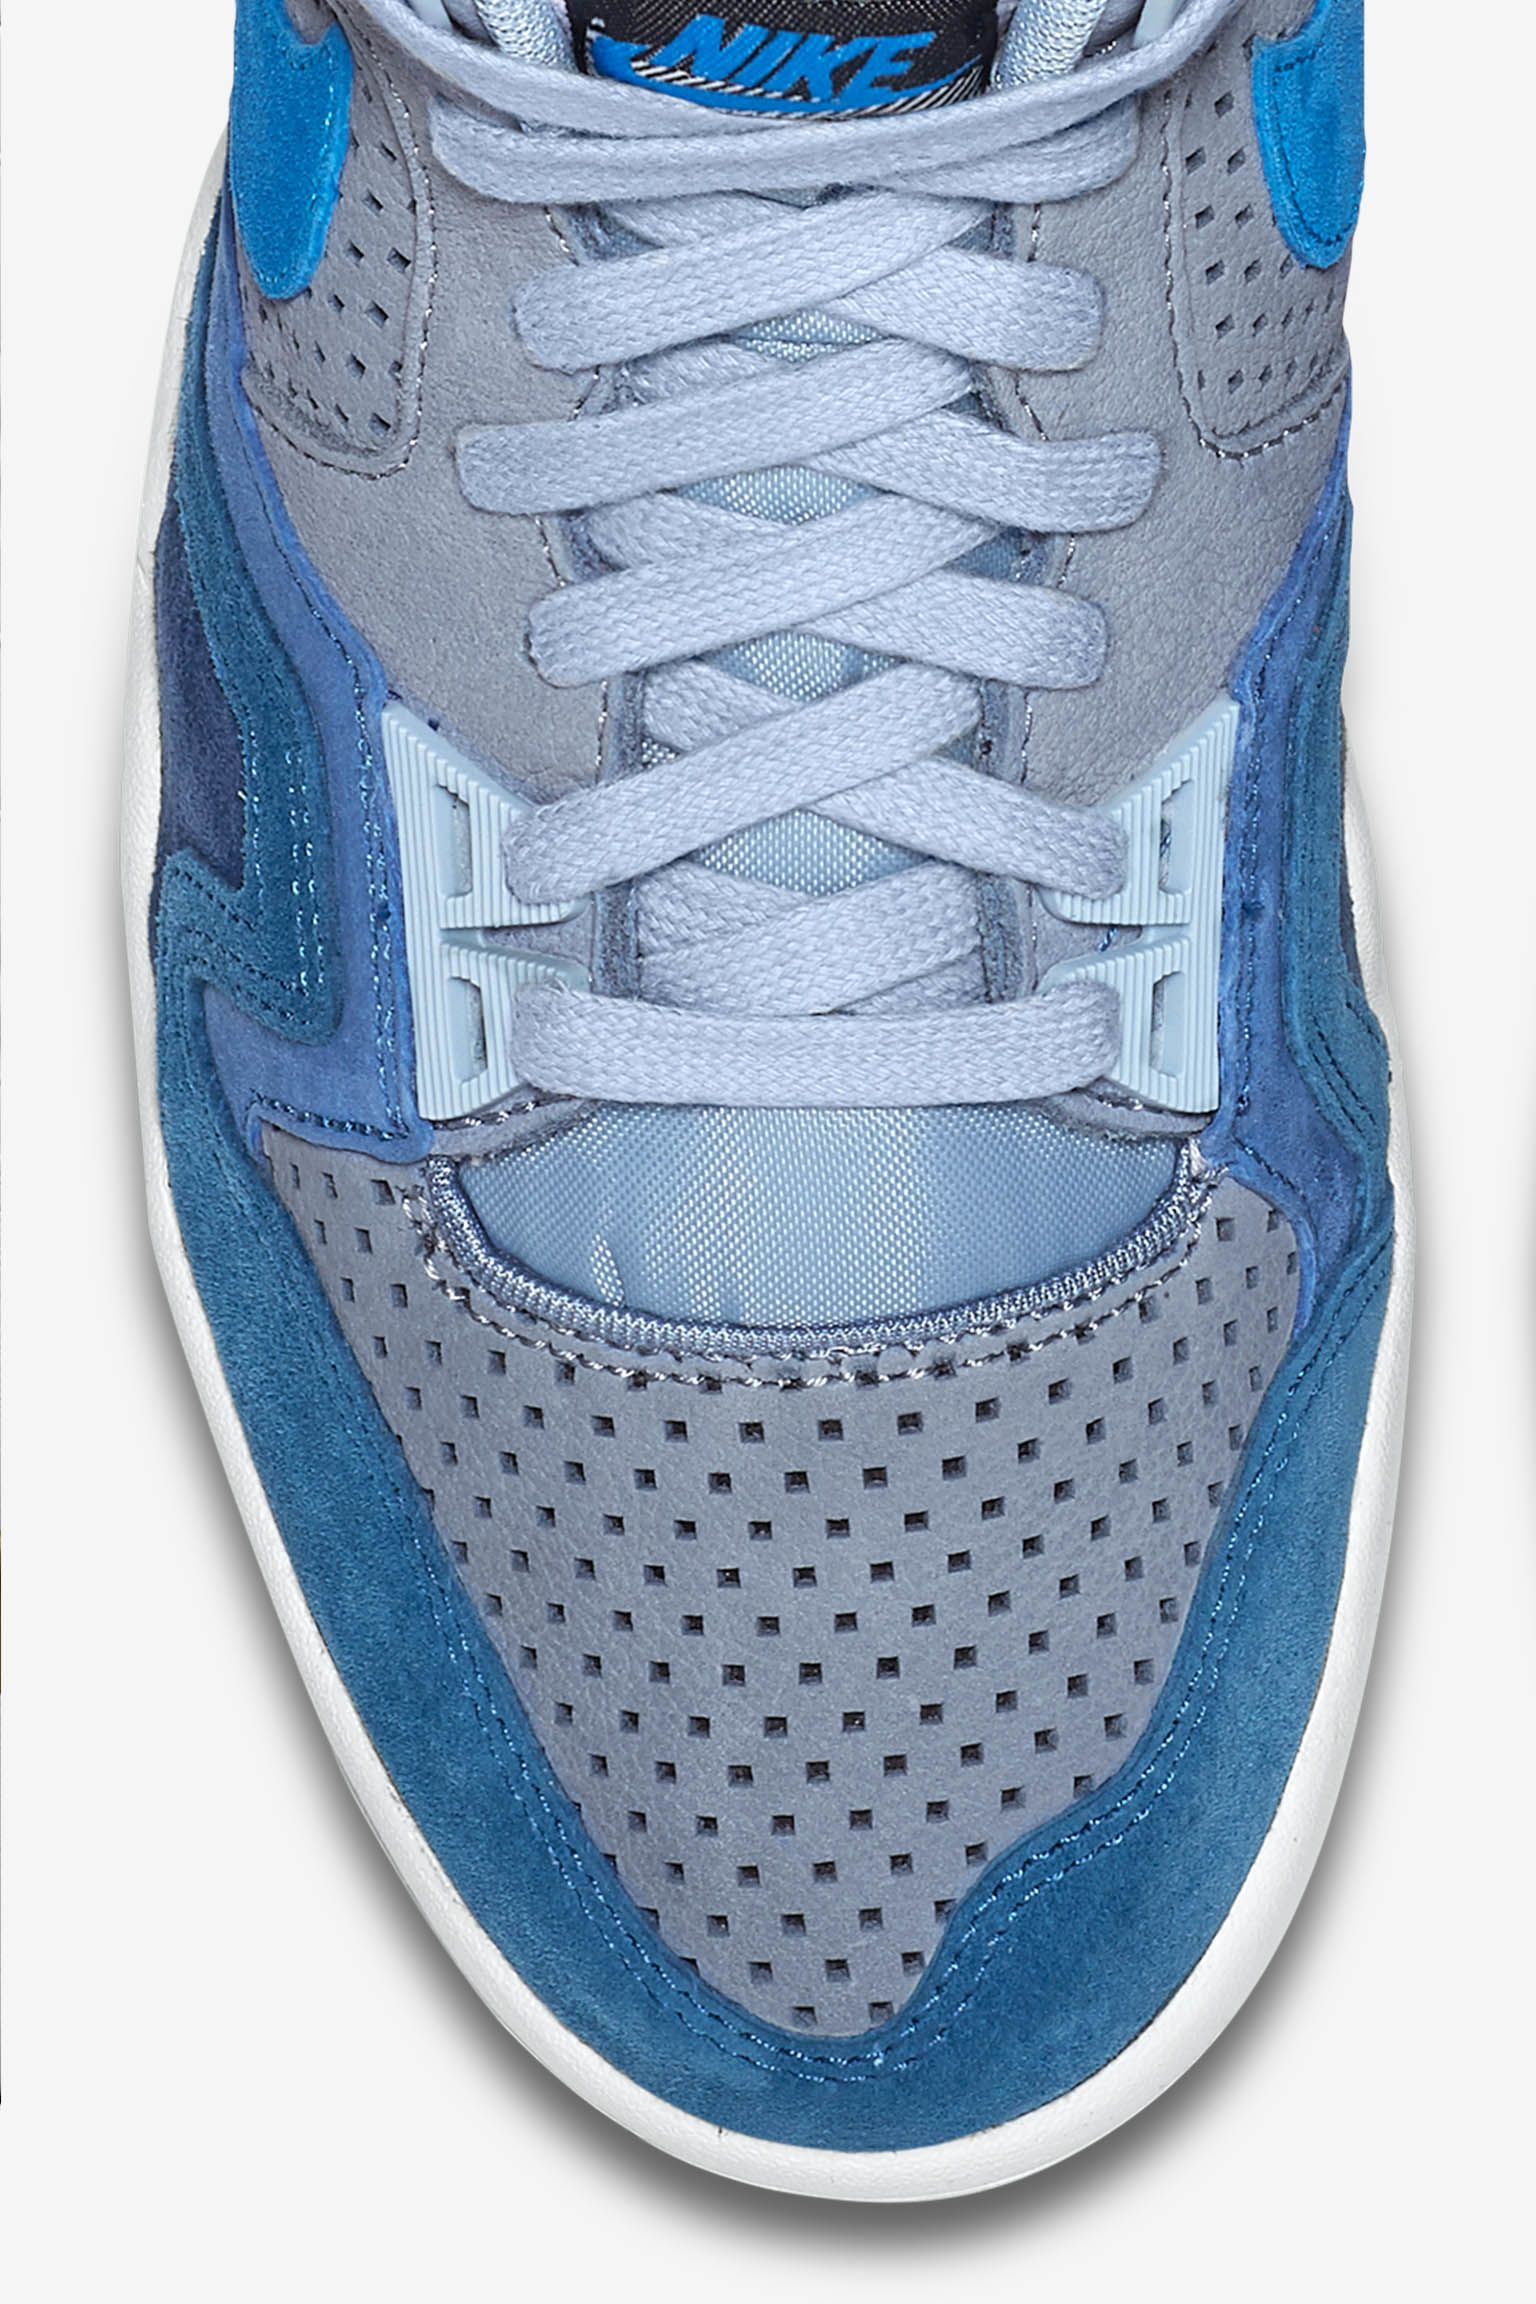 NikeCourt Air Tech Challenge 2 'Blue'